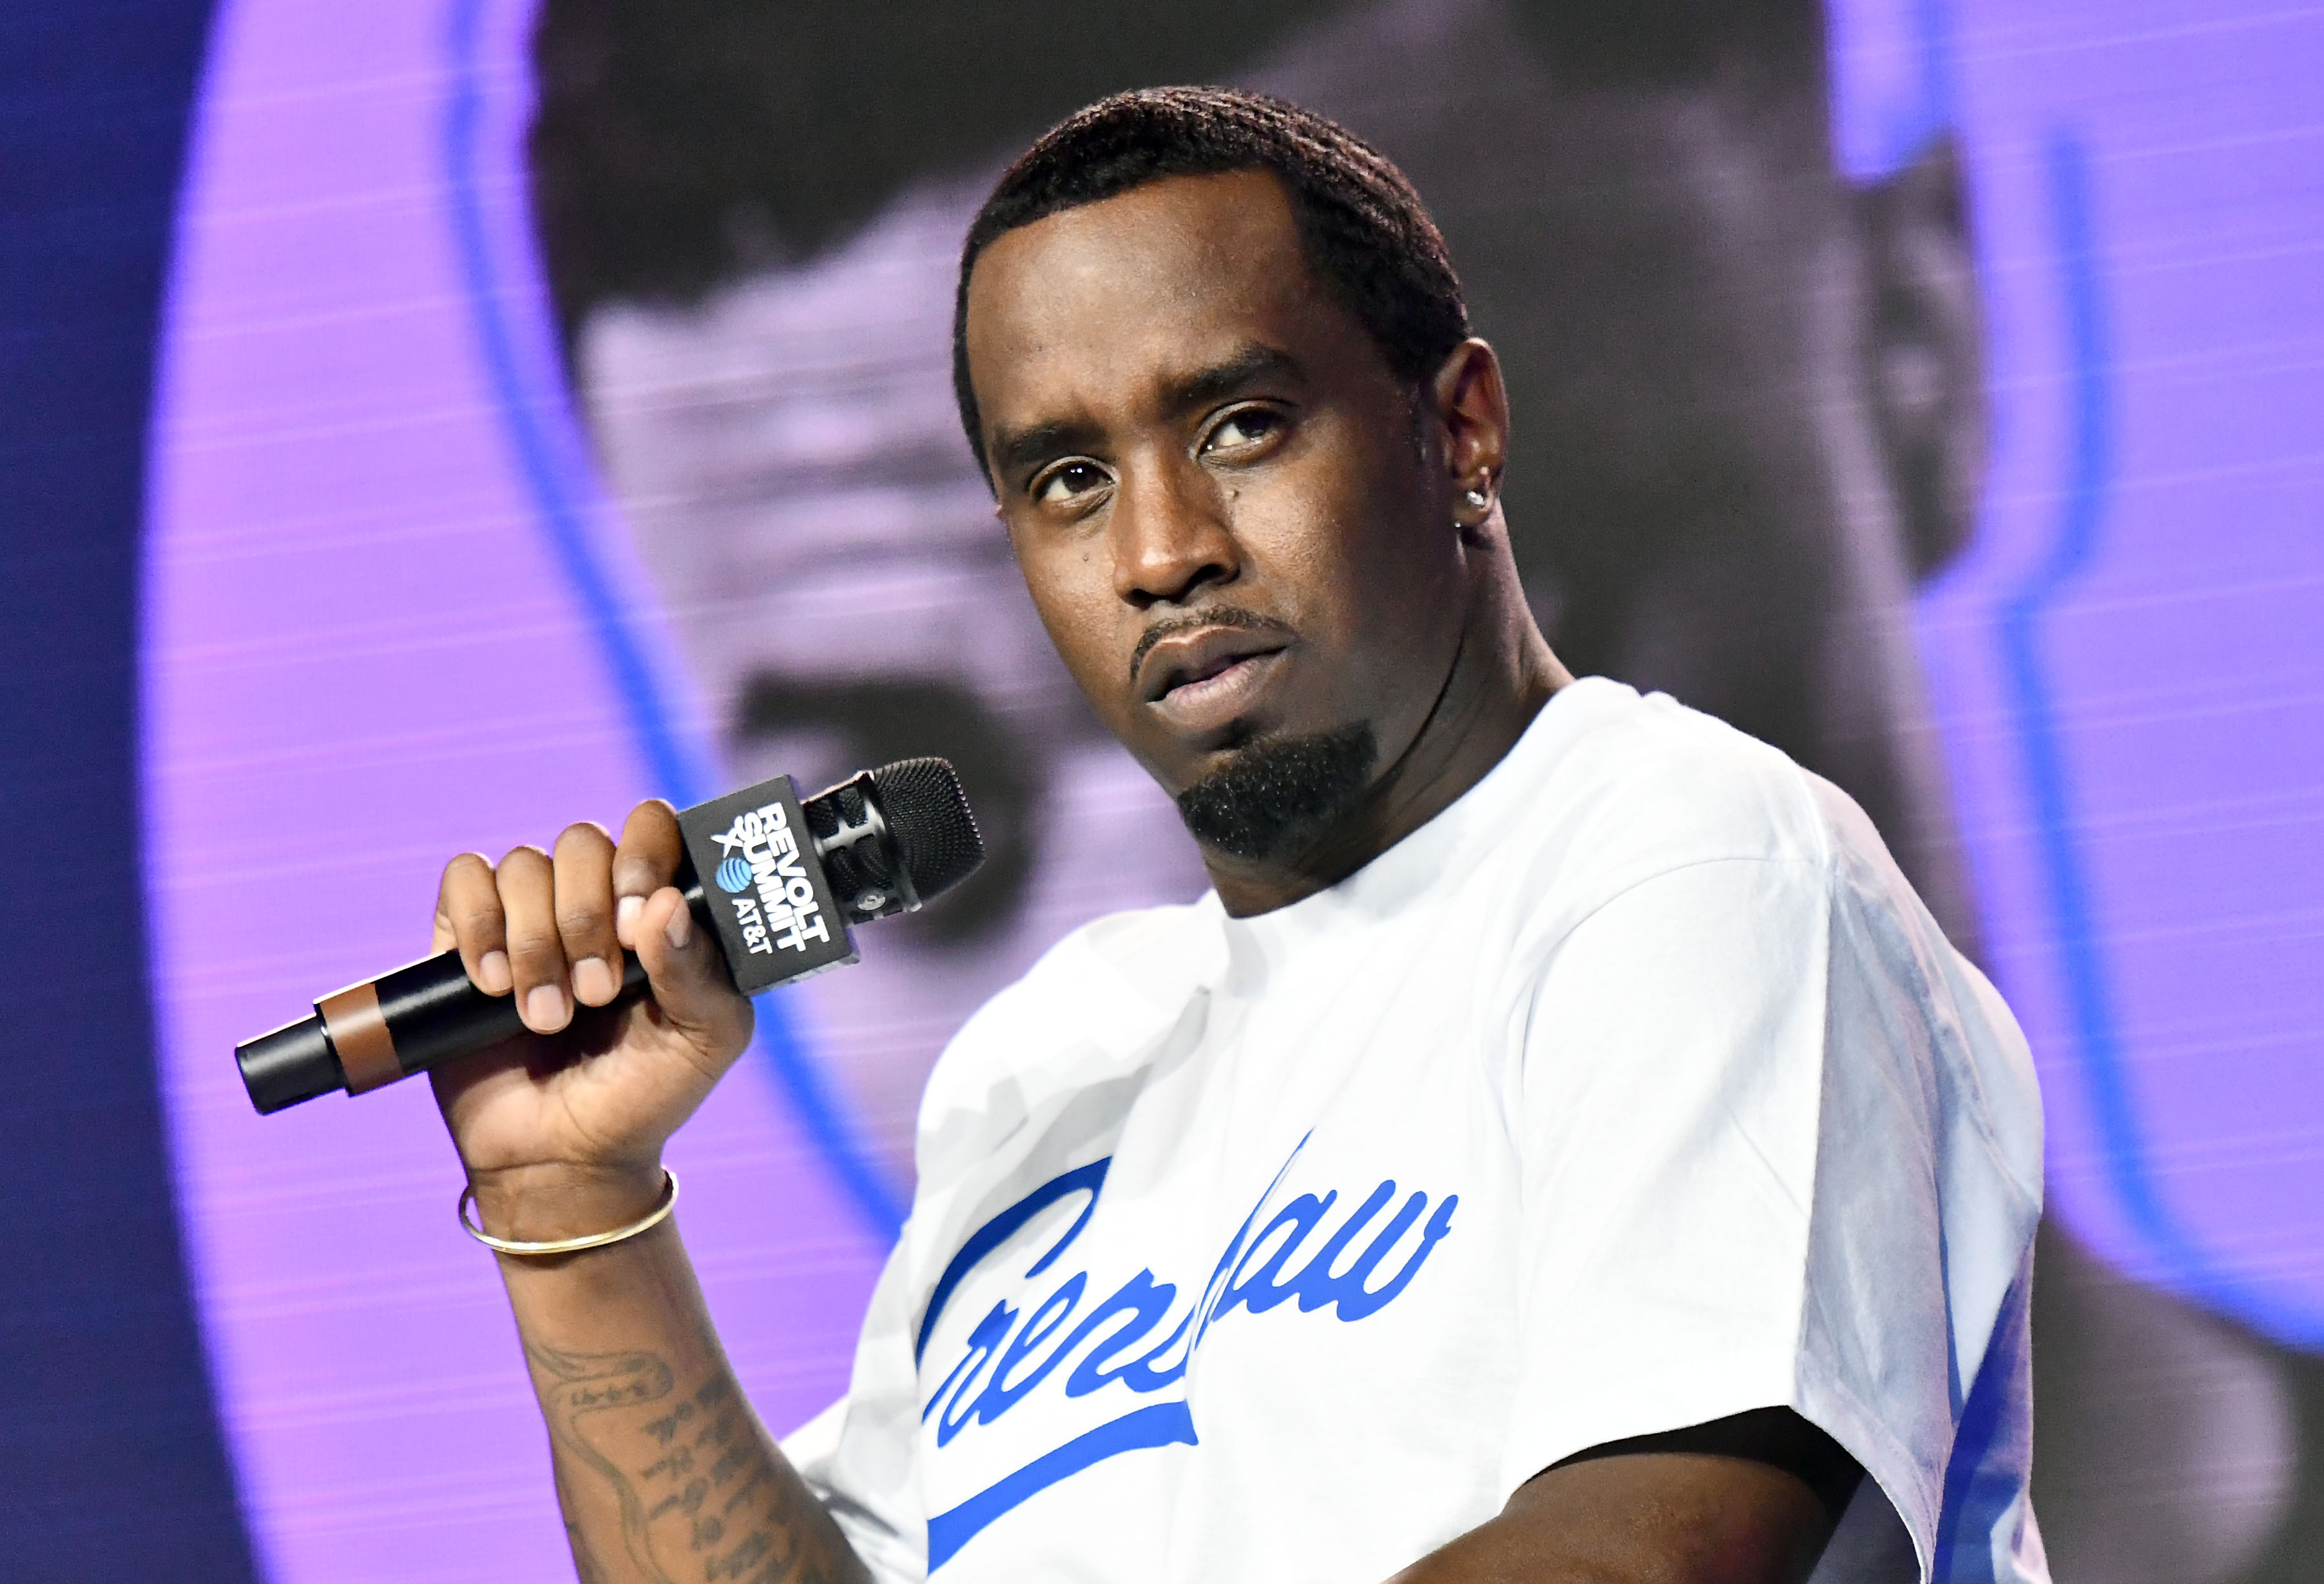 Sean Combs proves he has legally changed his middle name to 'Love'